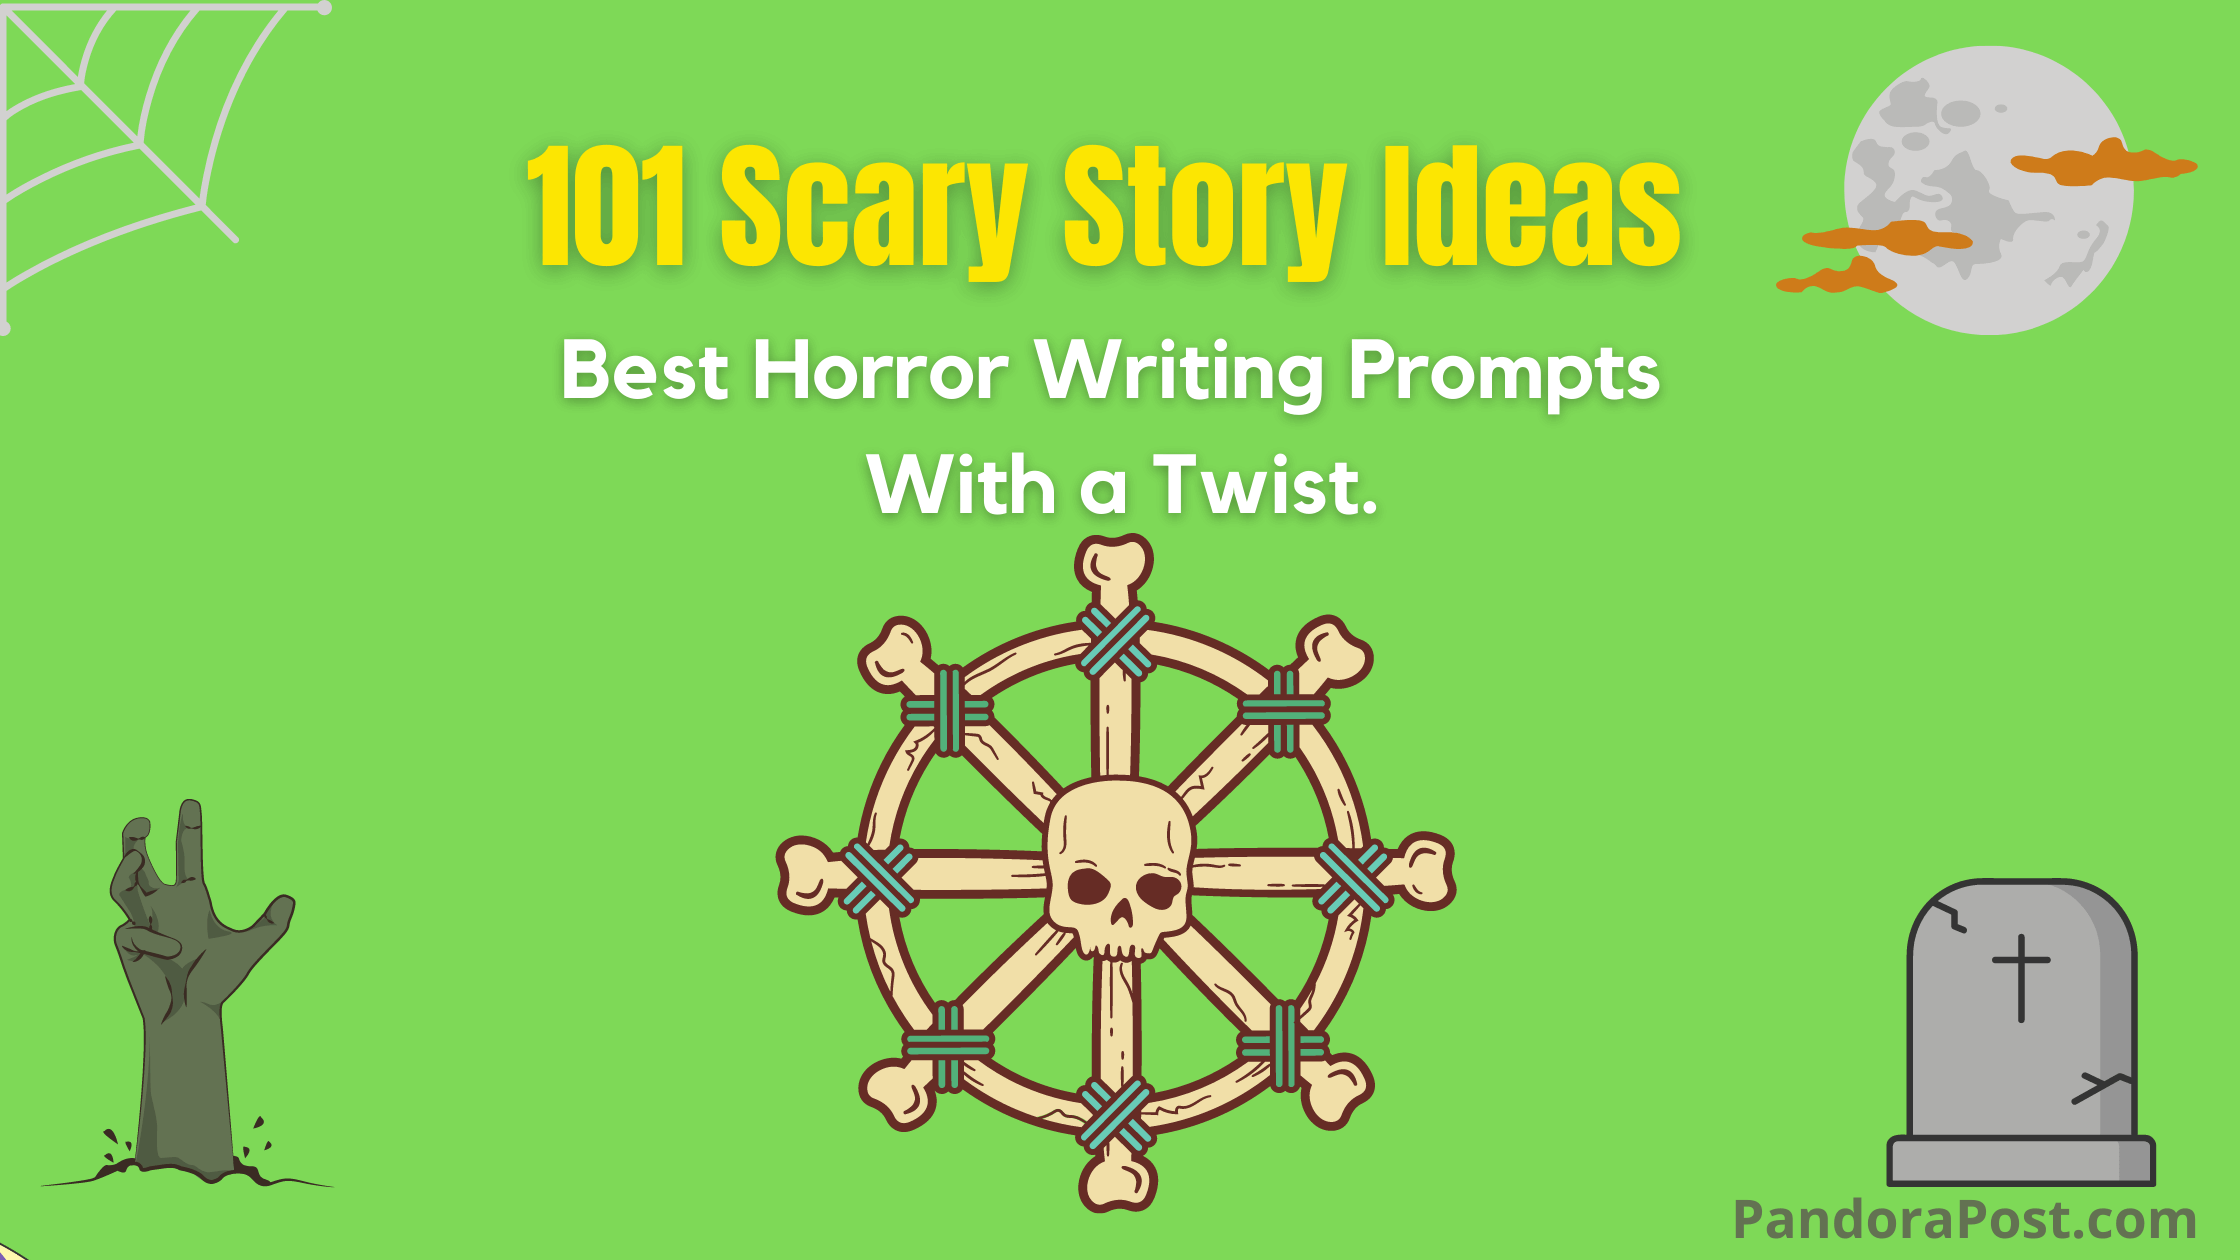 101 Best Horror Writing Prompts (Scary Story Ideas With a Twist)